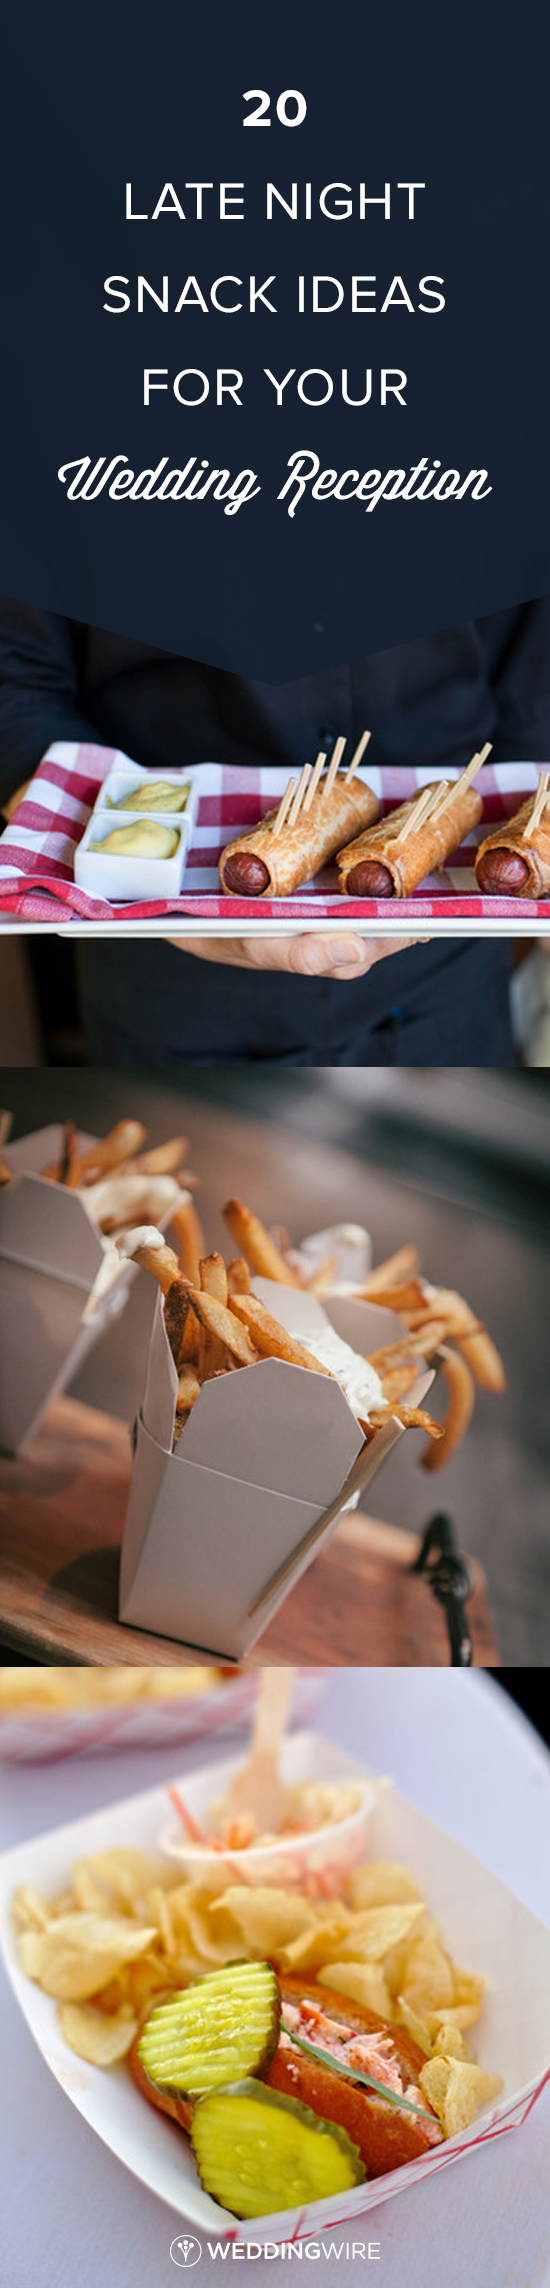 20 Late Night Snack Ideas For Your Wedding Reception